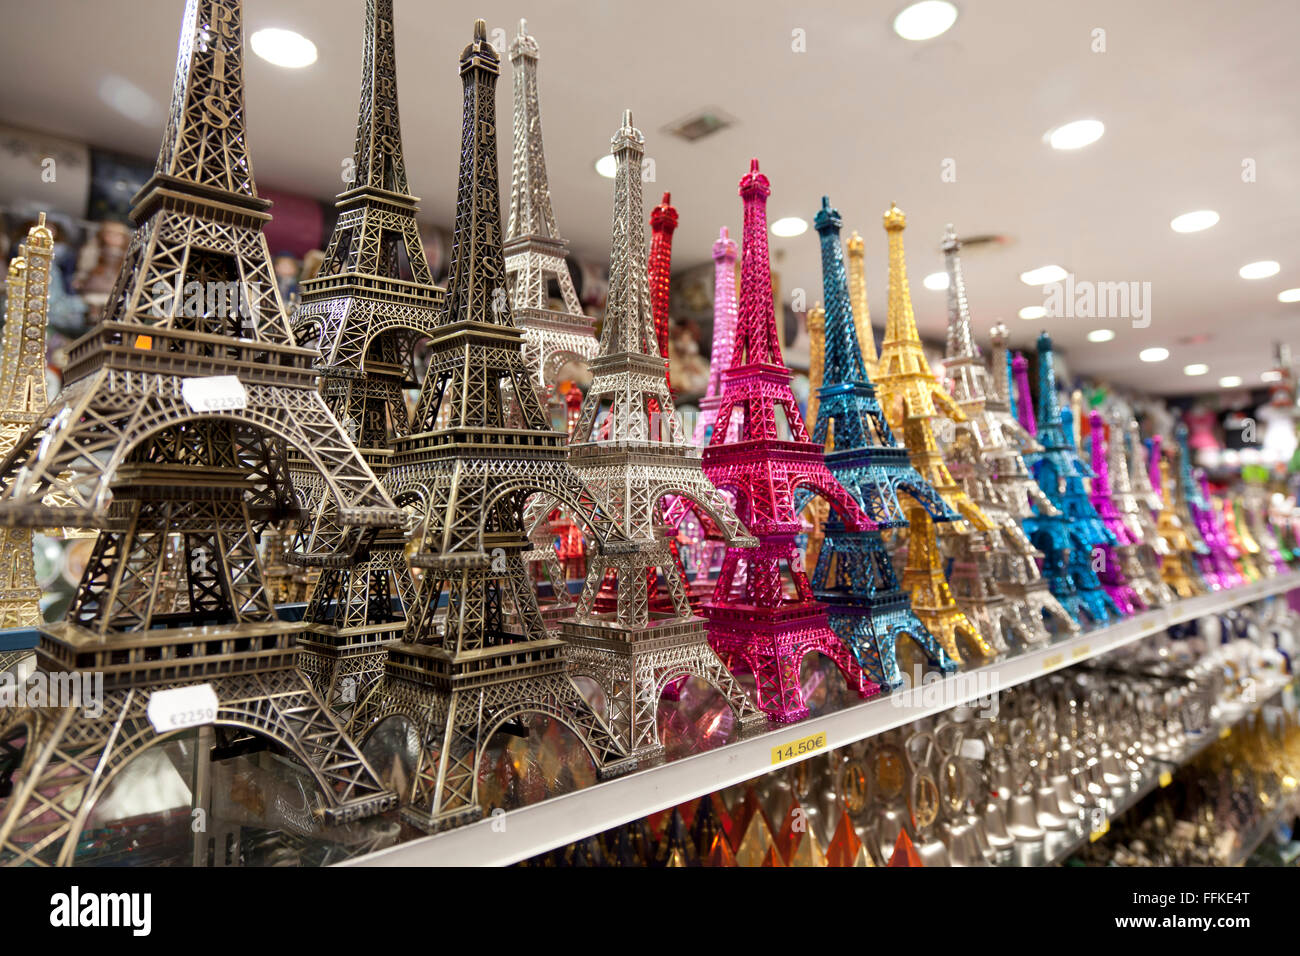 Small and colored miniature Eiffel tower souvenirs - Stock Image